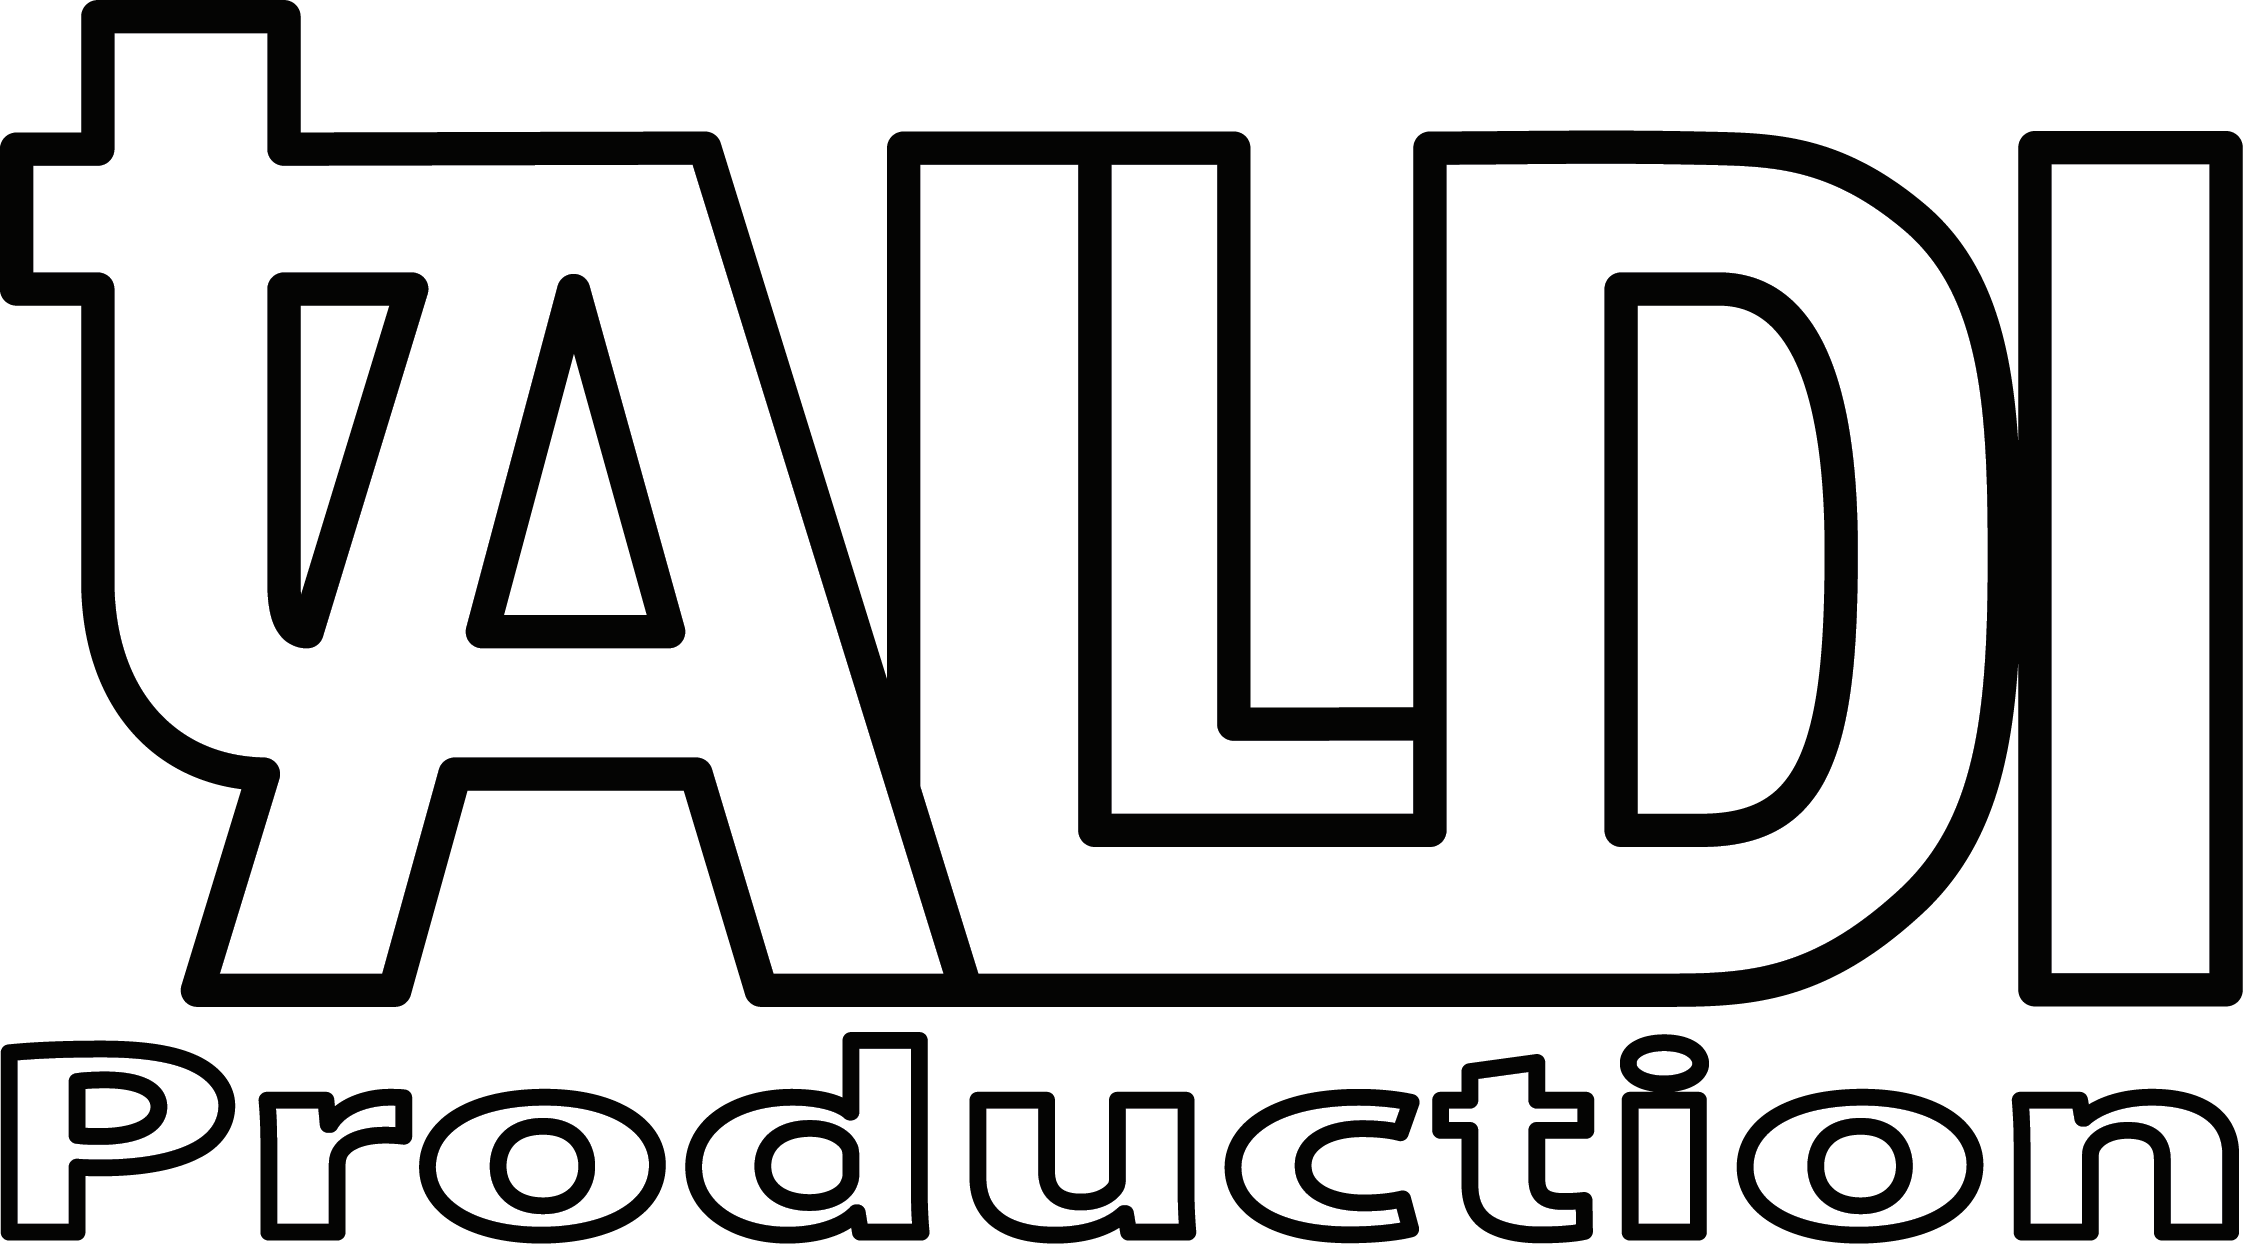 tallAldi Production home